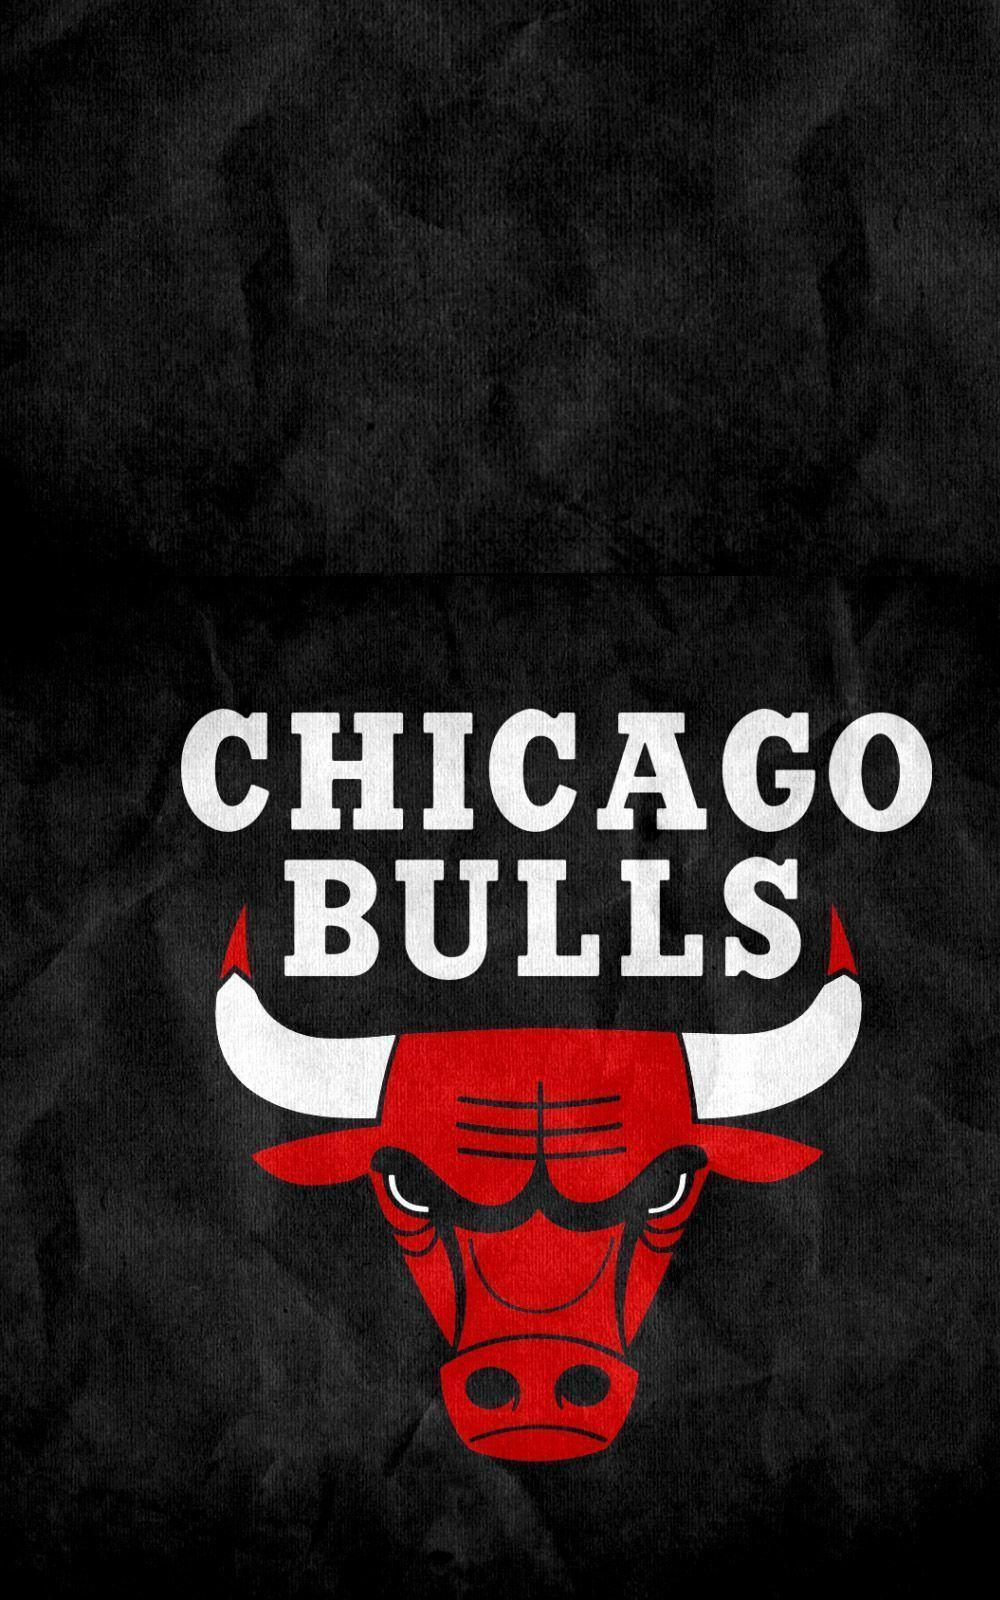 Chicago Bulls Wallpapers Hd 2017 Wallpapers Cave